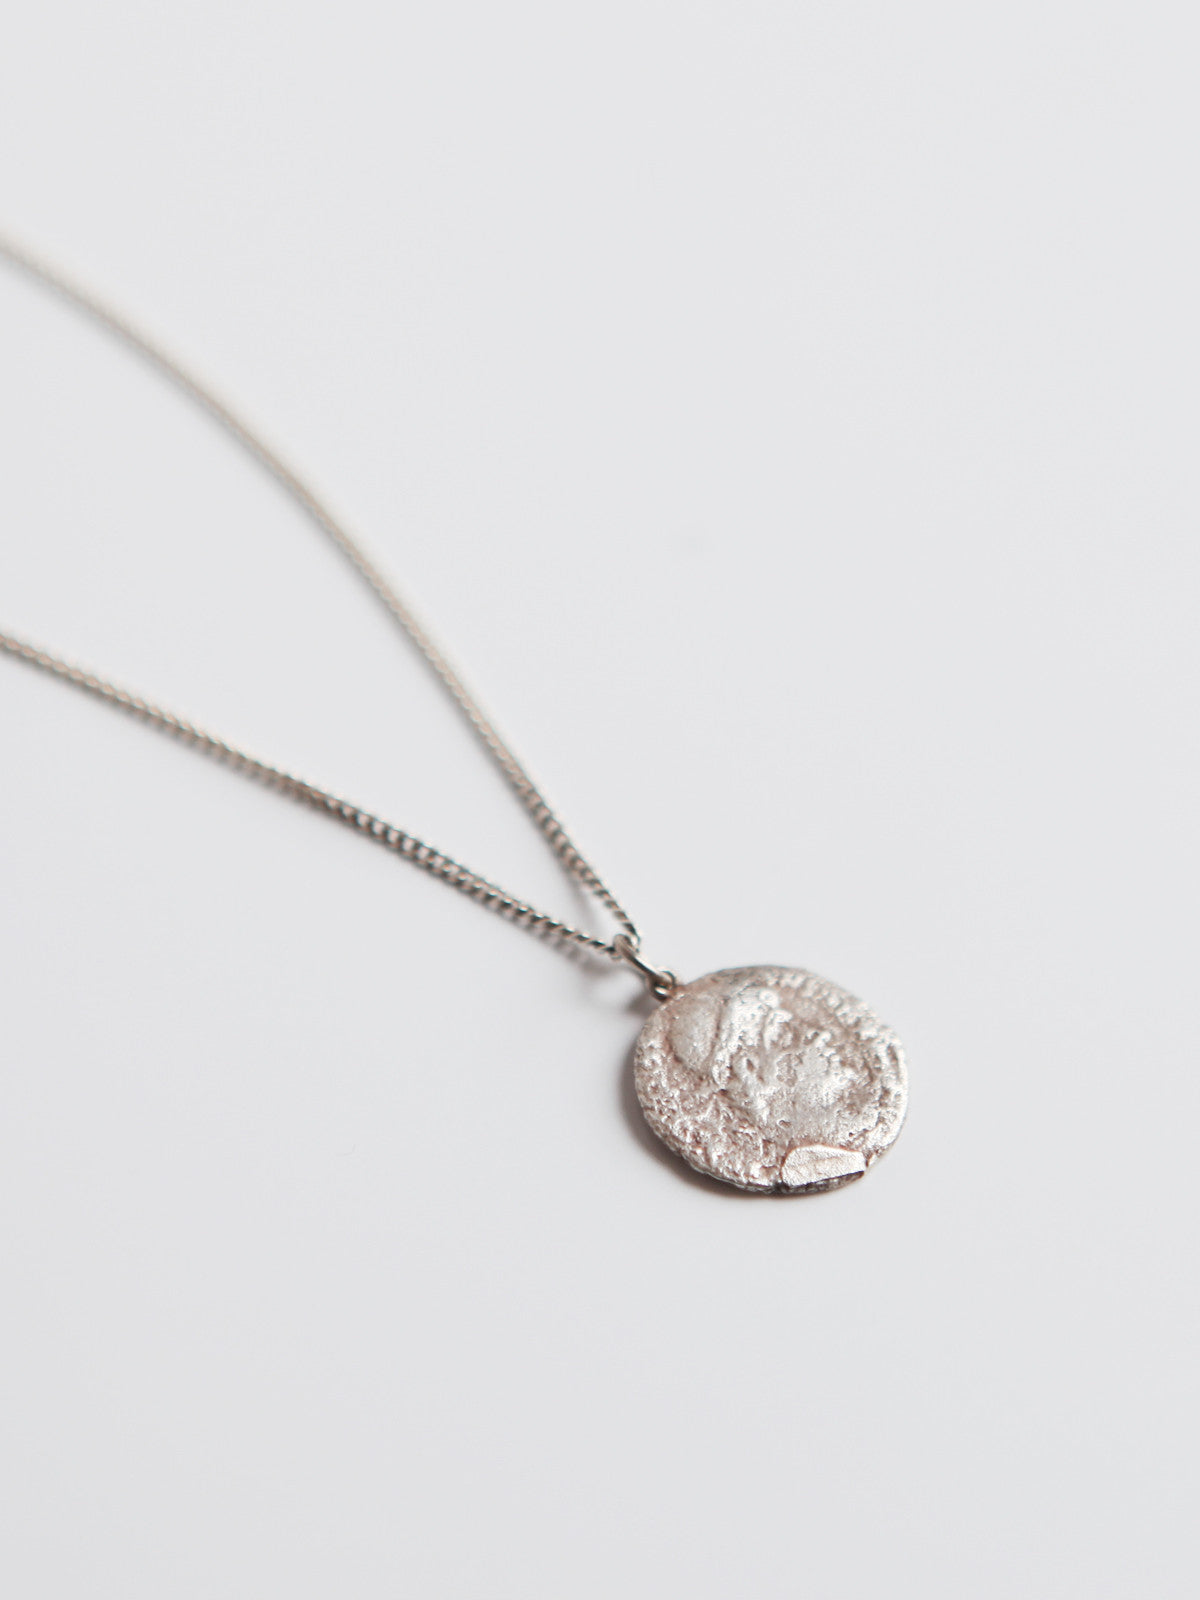 ORNAMENT & CRIME ROMAN COIN LONG SILVER CHAIN